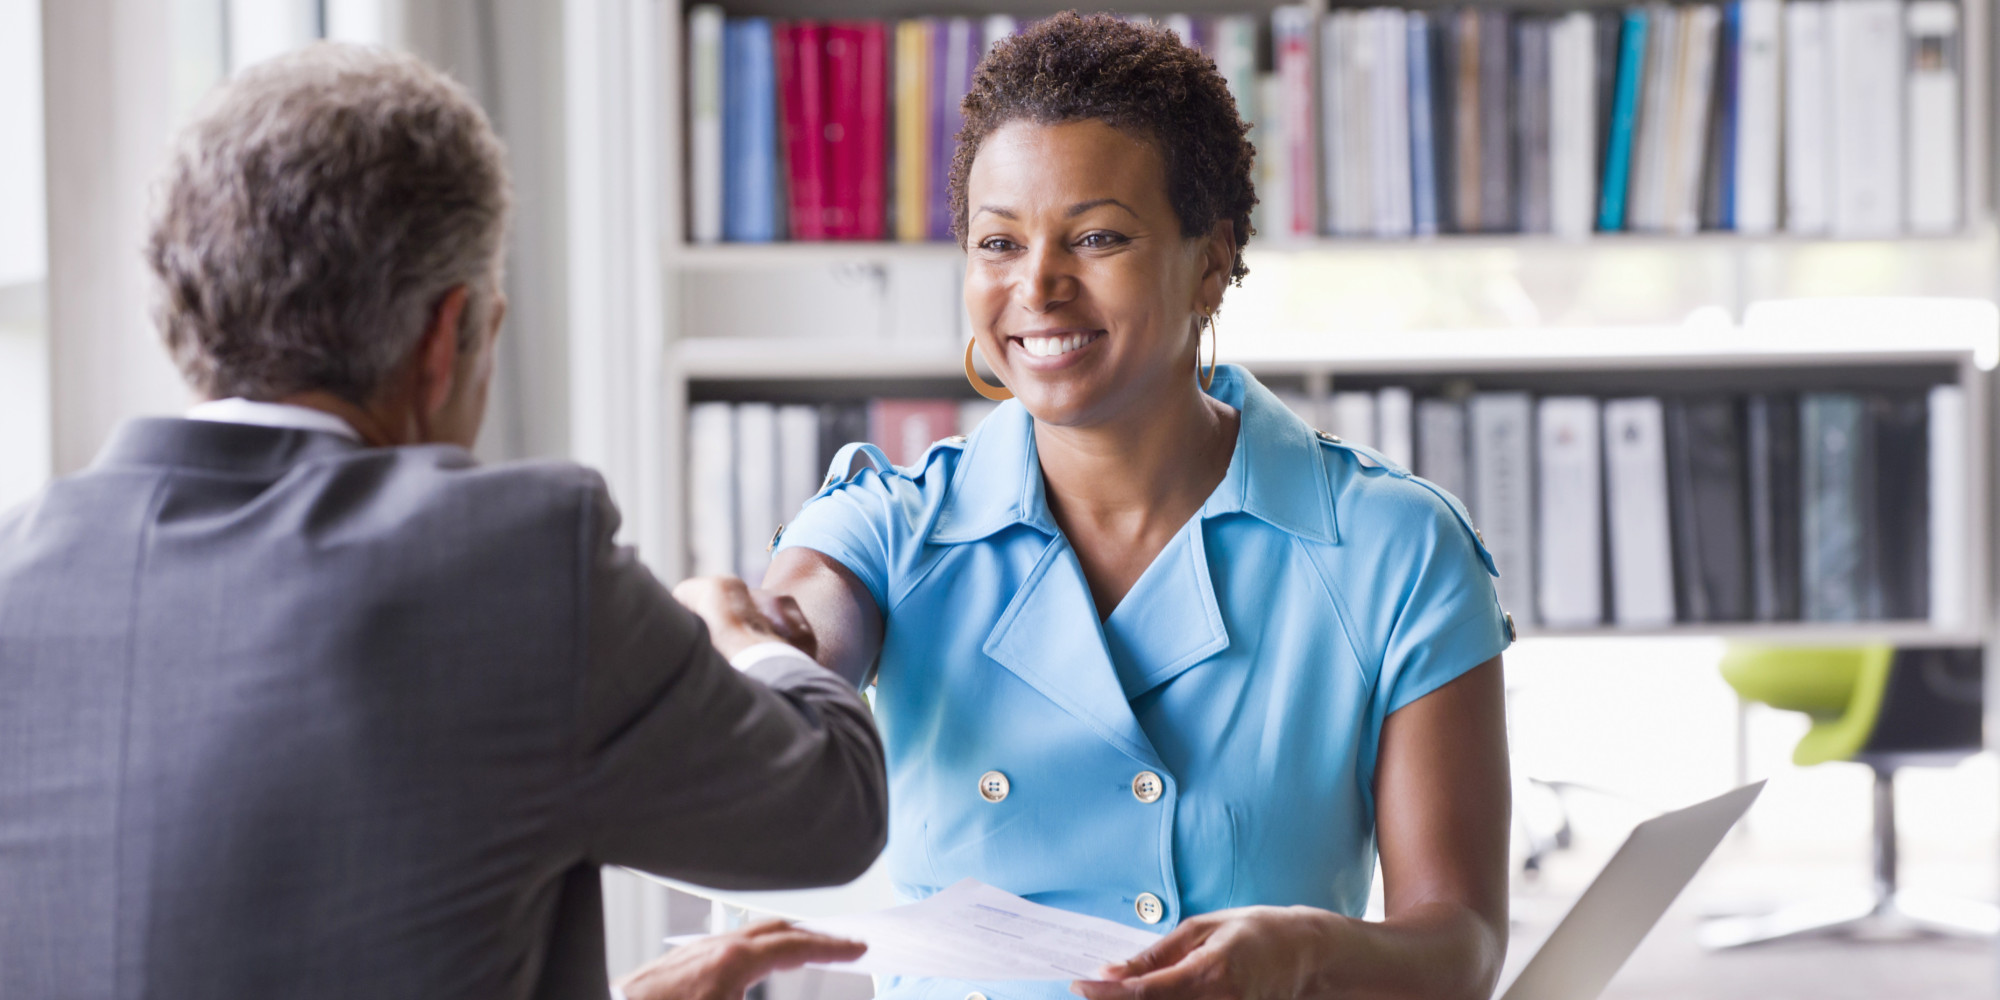 10 tips to ace your job interview